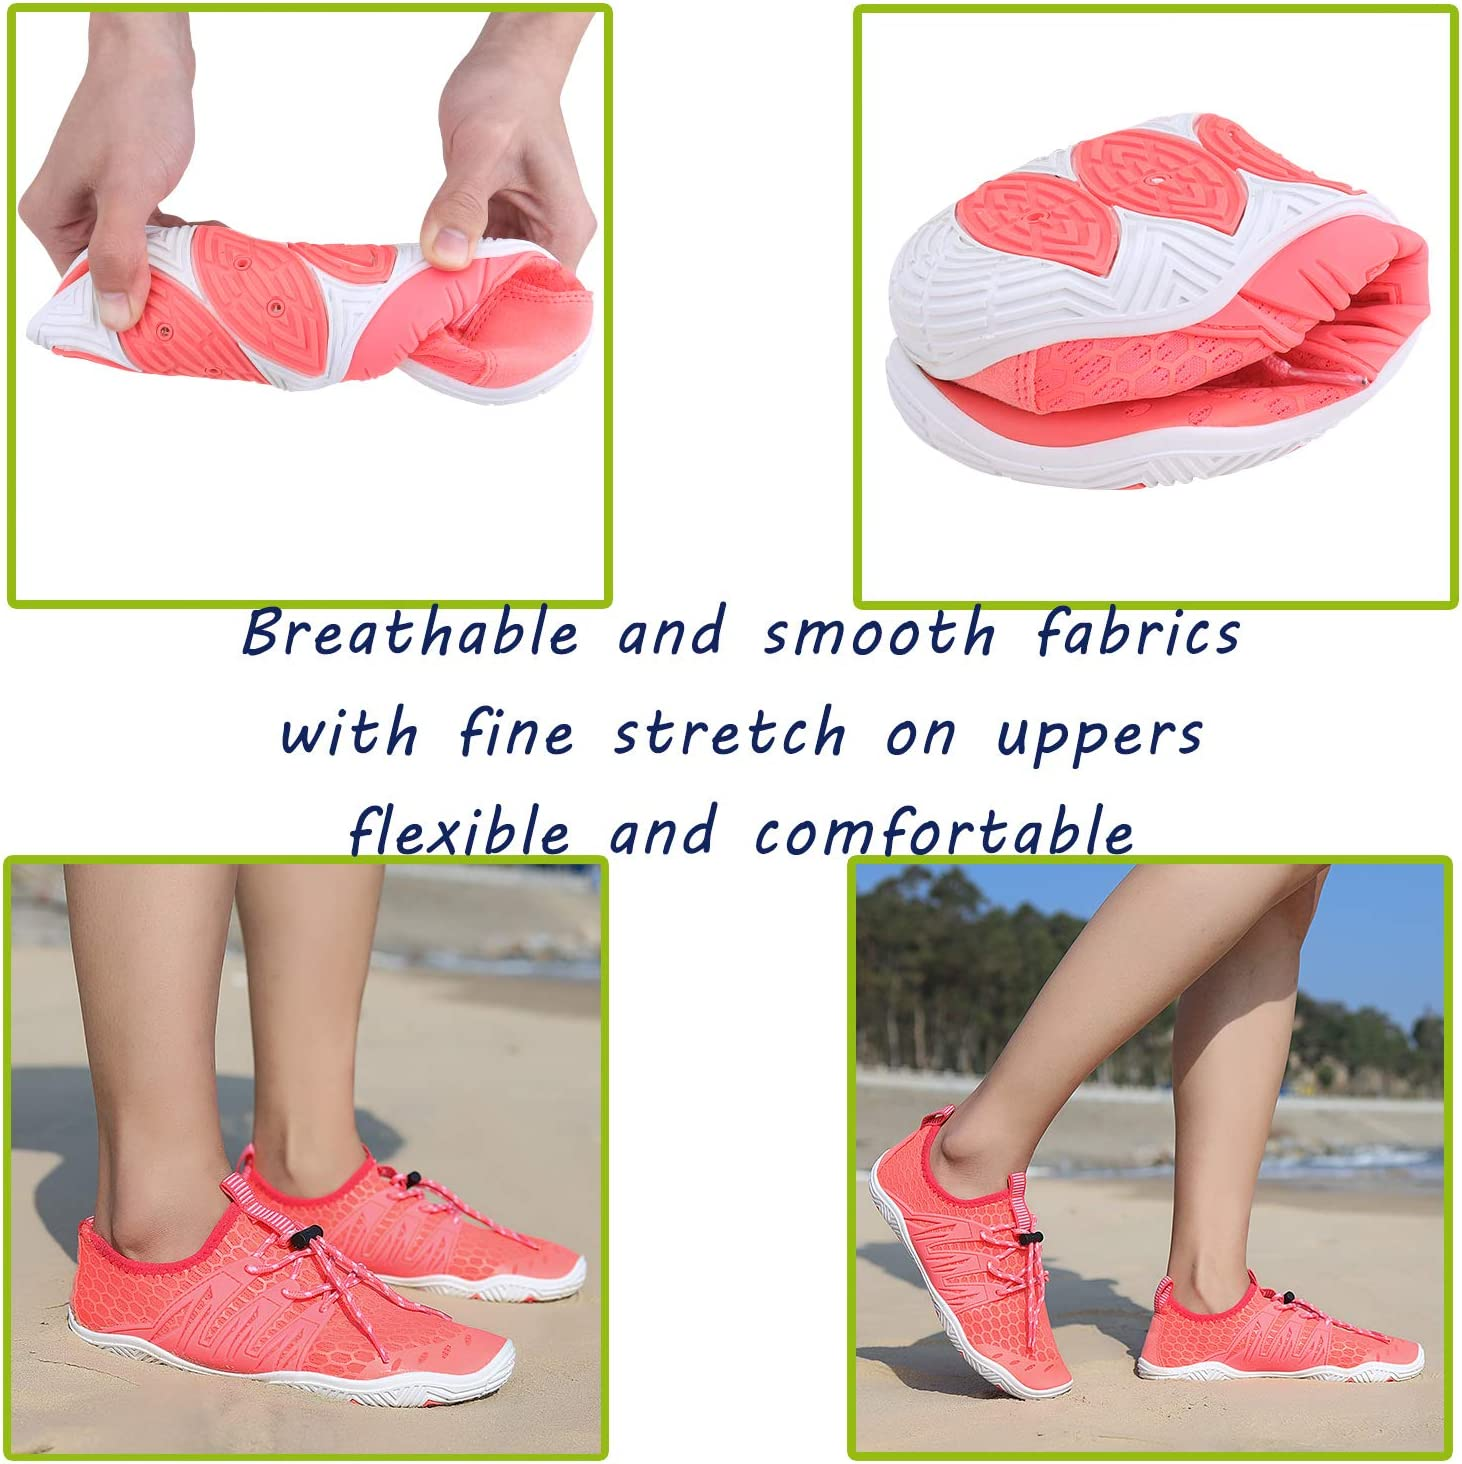 JointlyCreating Men Women Water Sports Shoes Slip-on Quick Dry Aqua Swim Shoes for Pool Beach Surf Walking Water Park 1-k-orange